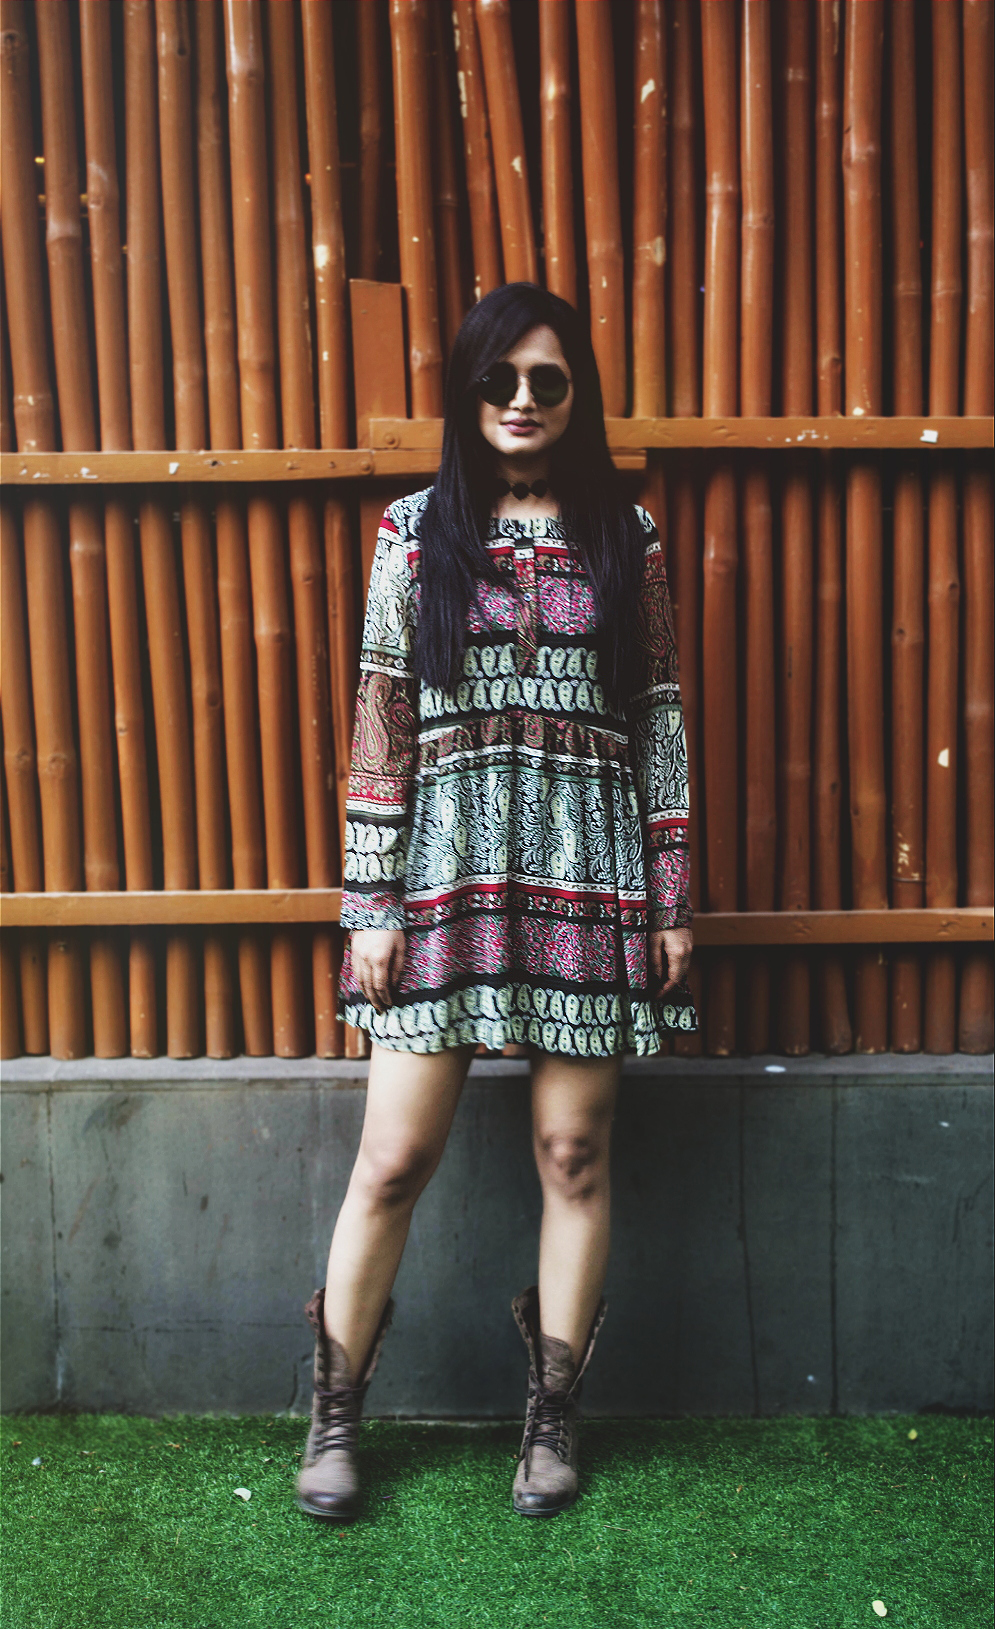 The-Chic-Armoire-by-Nidhi-Kunder-Shuffle-4